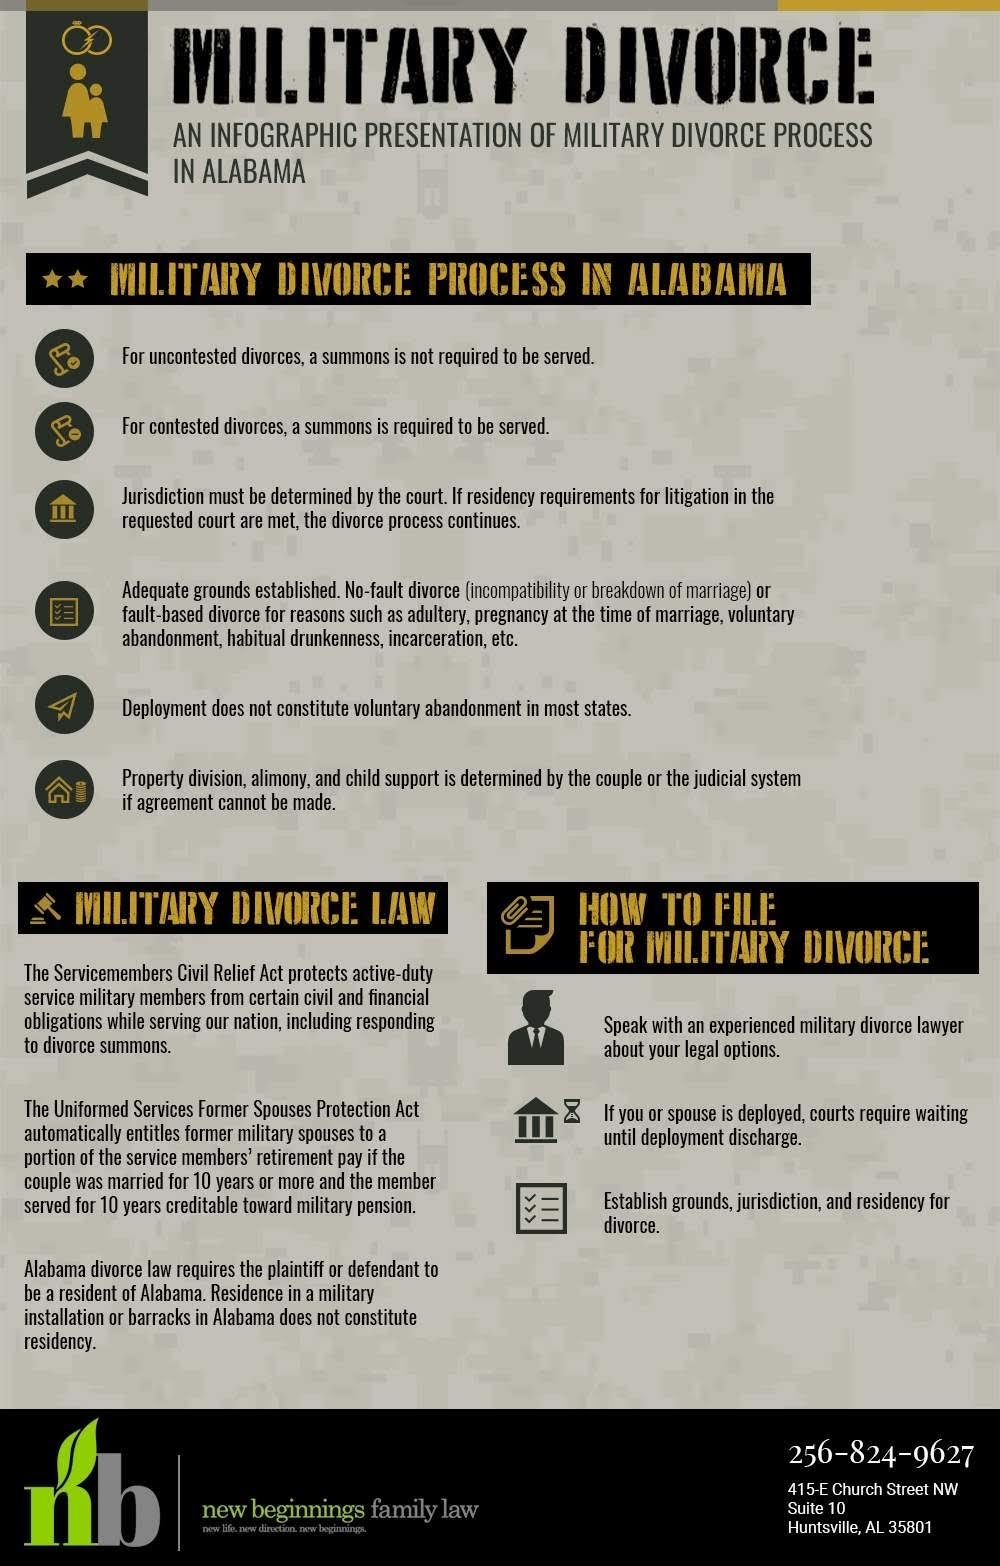 Military Divorce Process in Alabama #infographic